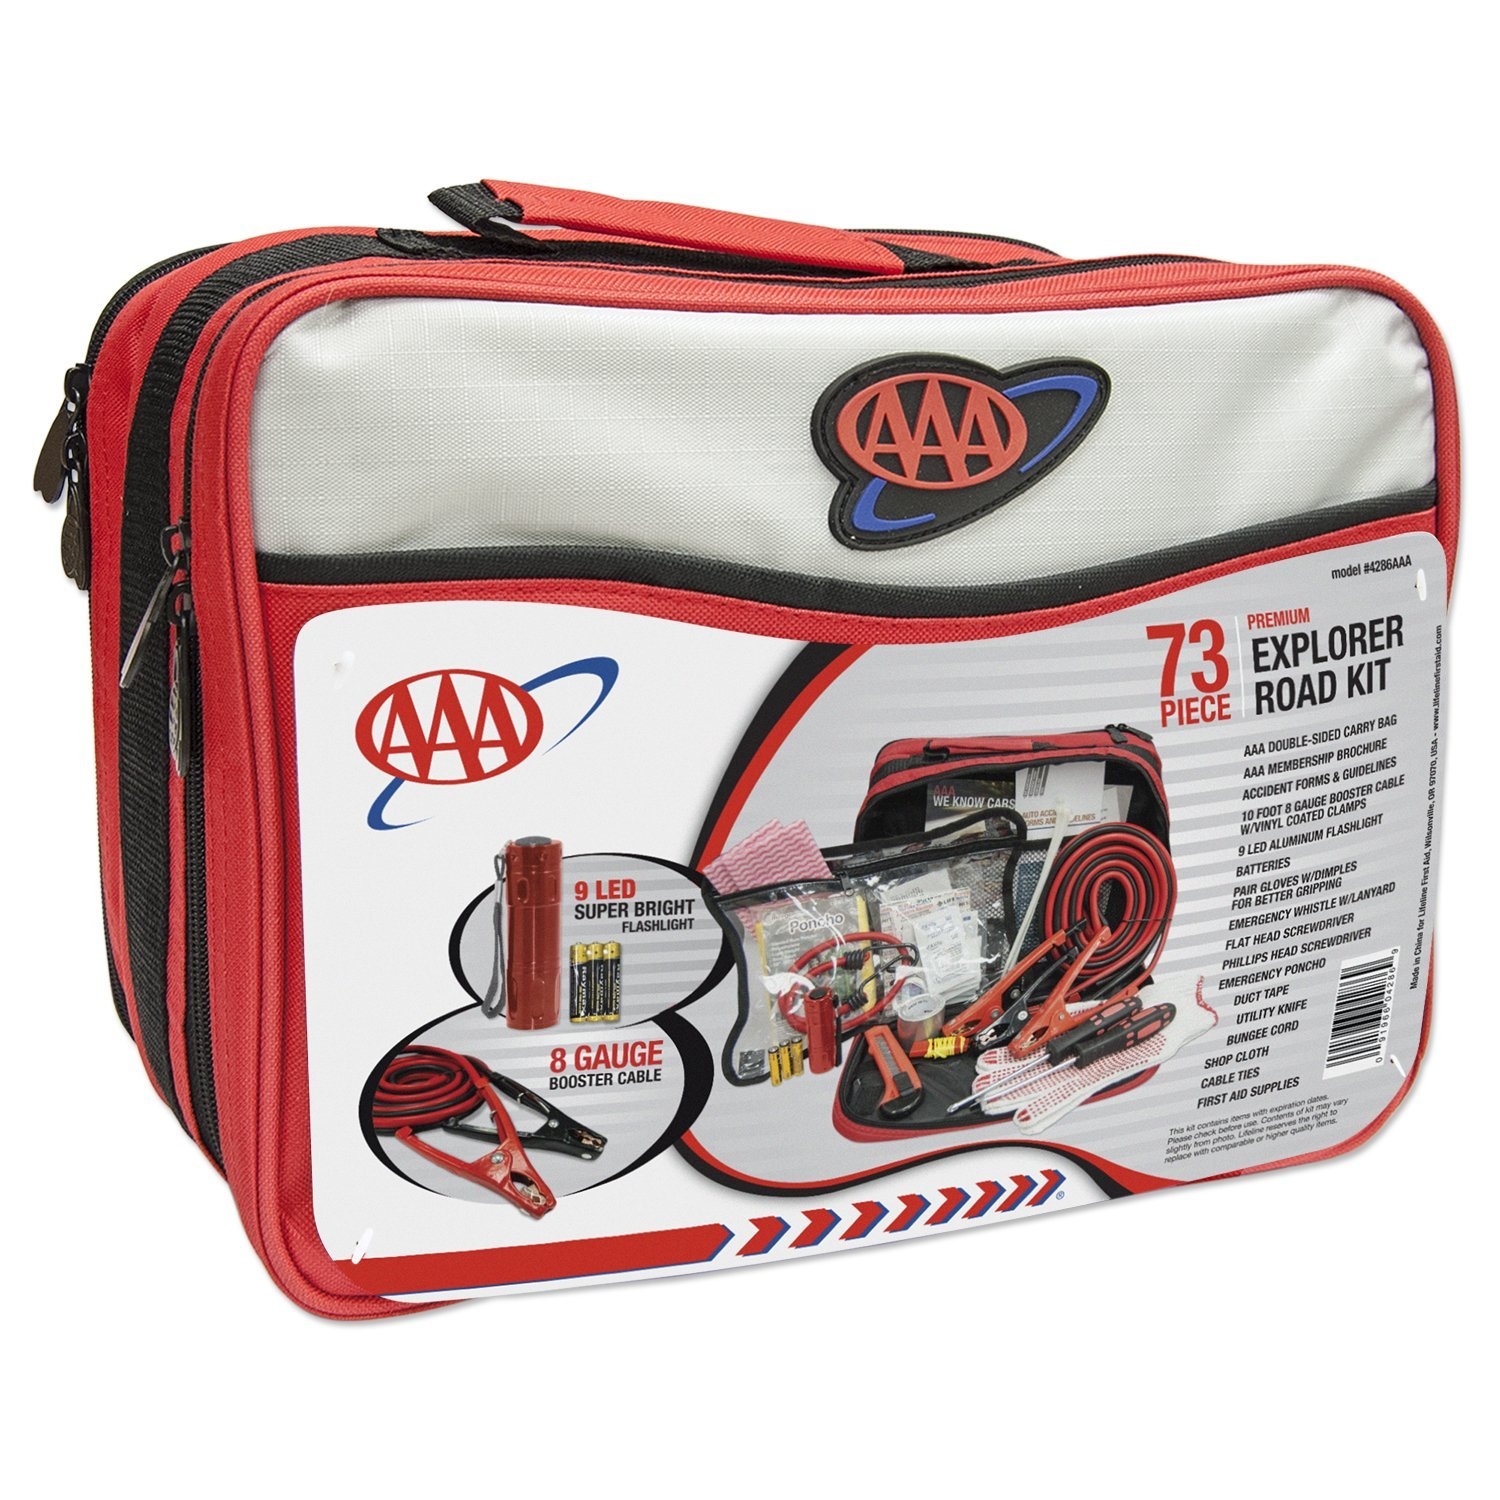 AAA 4386AAA Explorer Road Show Emergency Assistance Kit 73 Piece